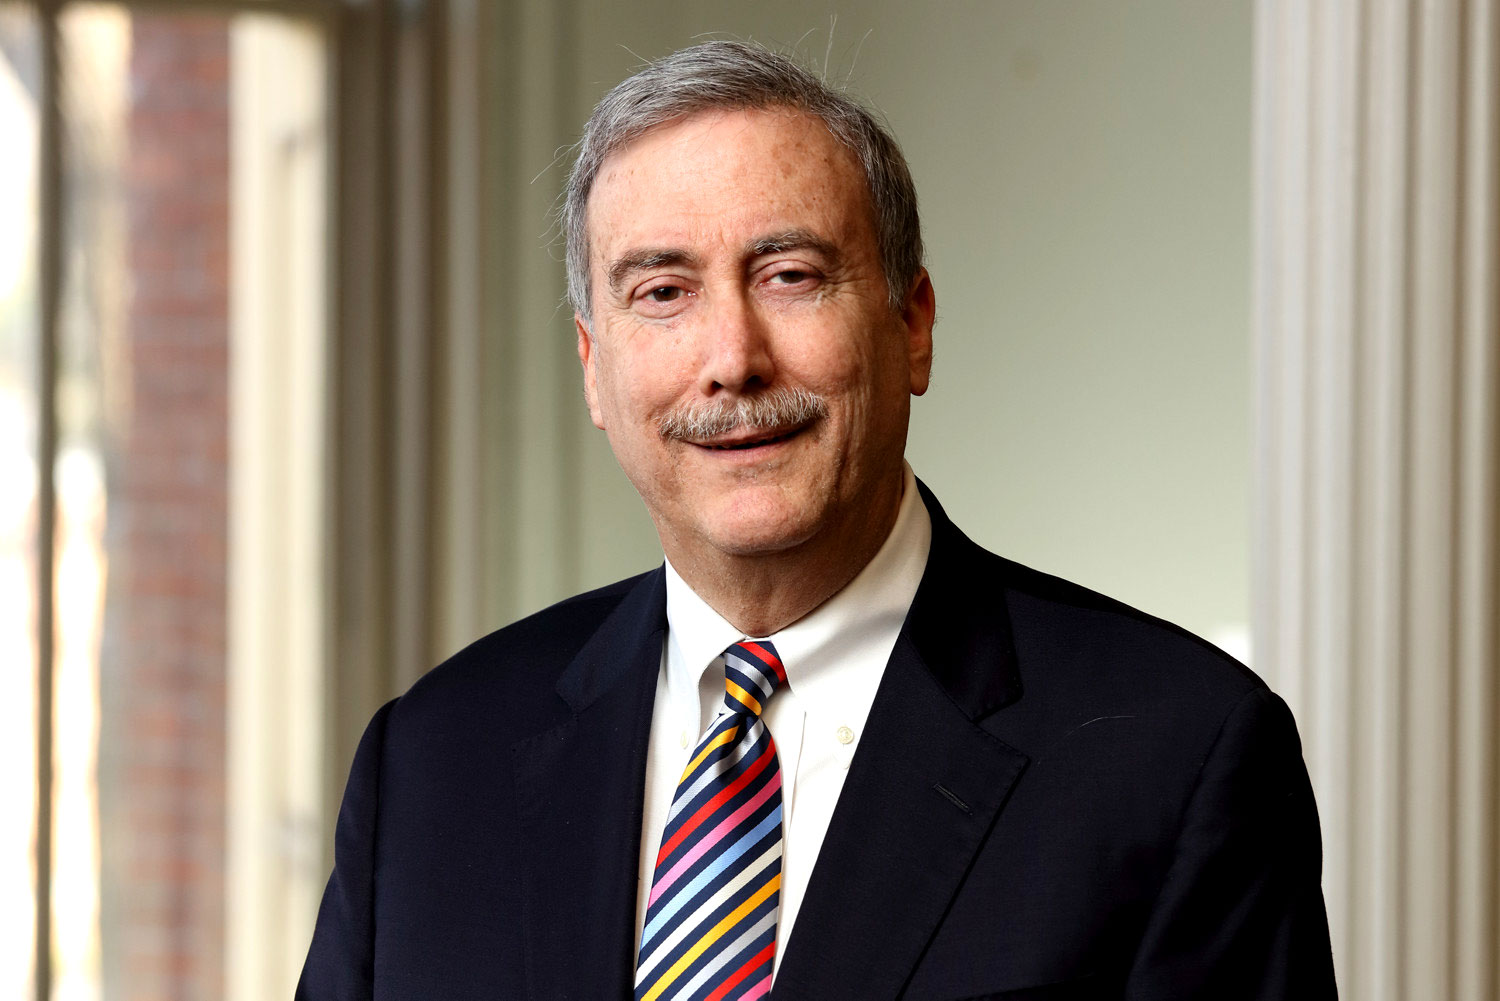 Renowned political analyst and politics professor Larry Sabato is the founding director of UVA's Center for Politics. (Photo by Dan Addison, University Communications)